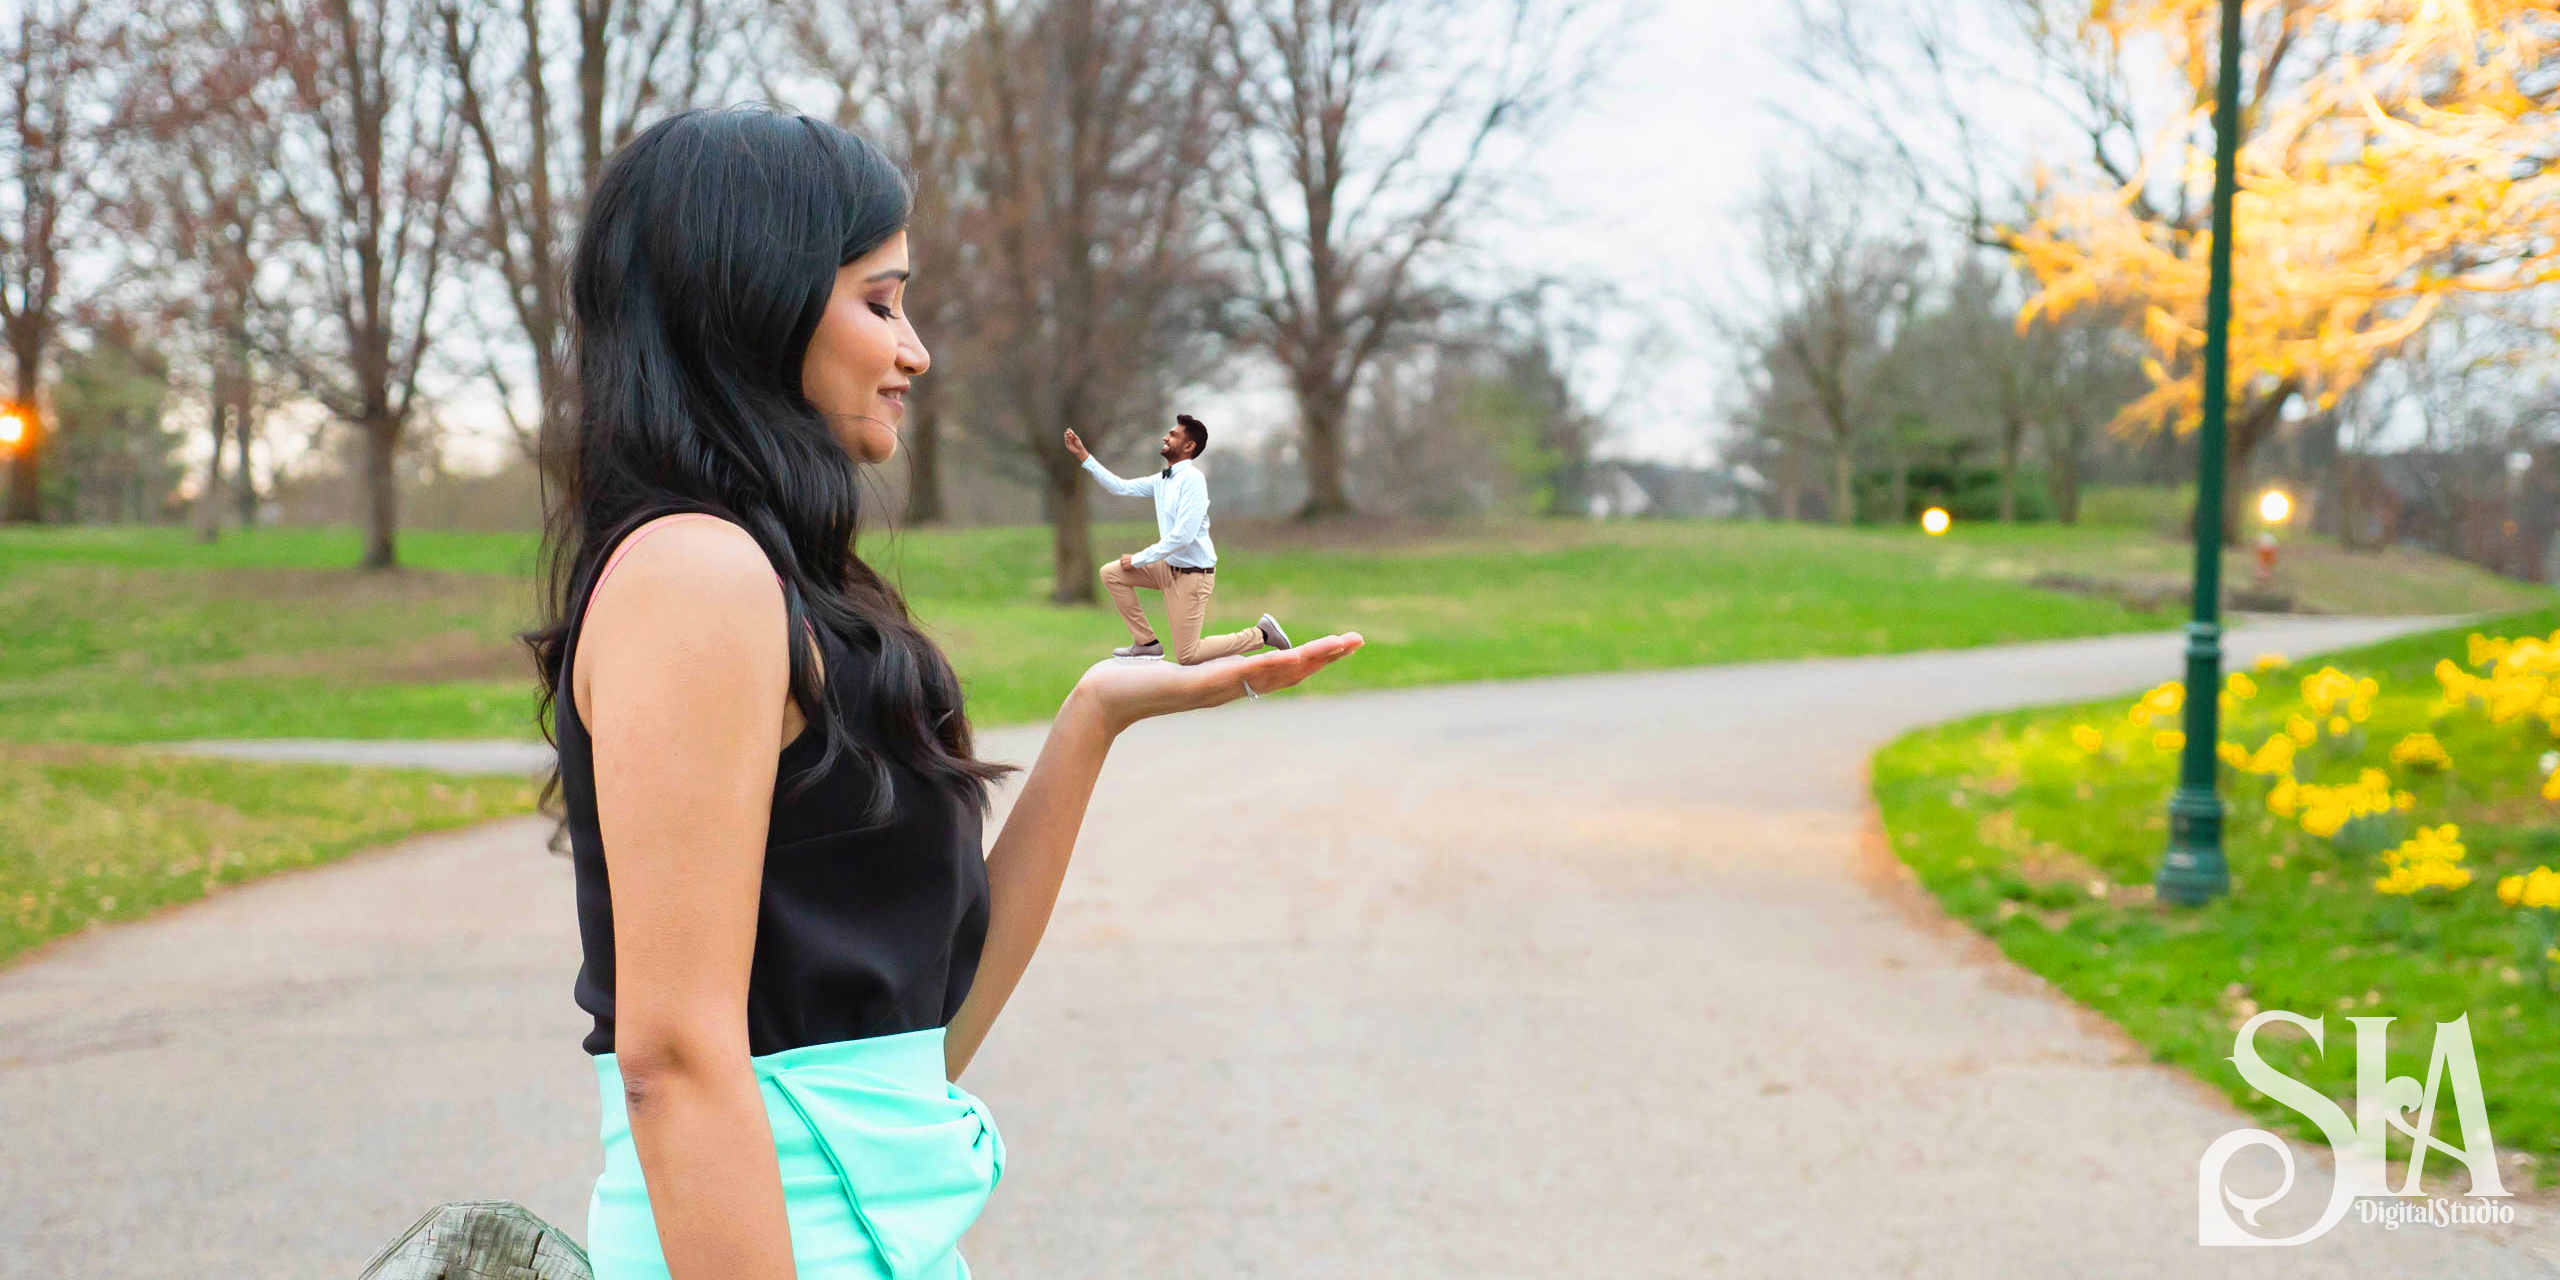 7 Amazing Miniature Photography Ideas to Try Right Now